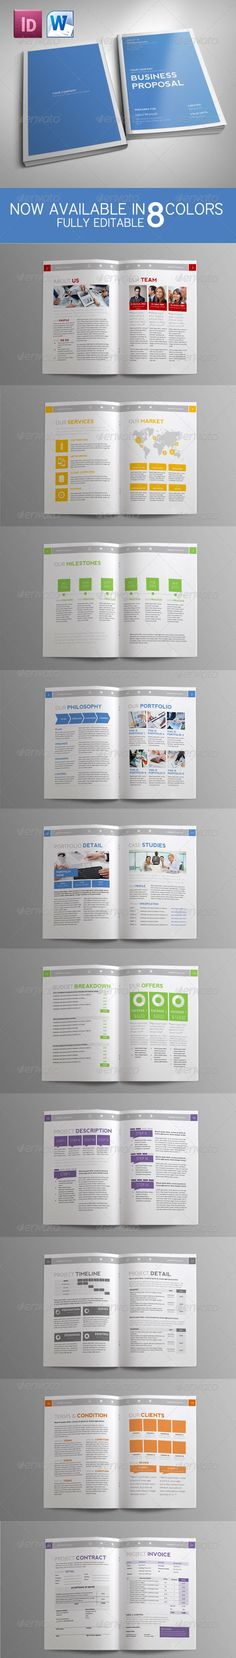 Sleman Clean Proposal Template - Proposals & Invoices Stationery